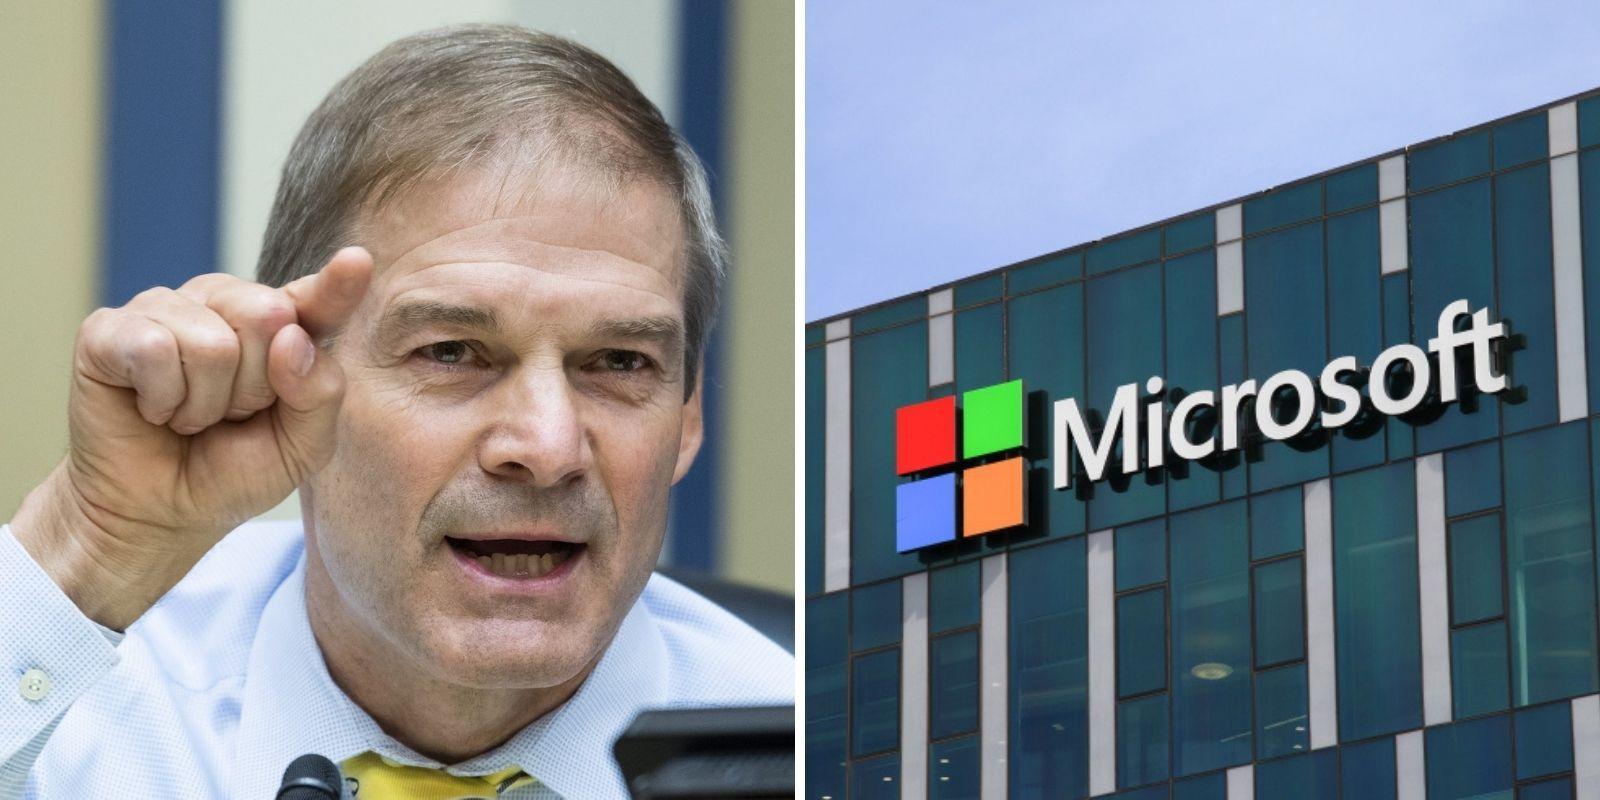 Rep. Jim Jordan says Big Tech 'is out to get conservatives,' slams Democrats for shielding Microsoft from antitrust scrutiny